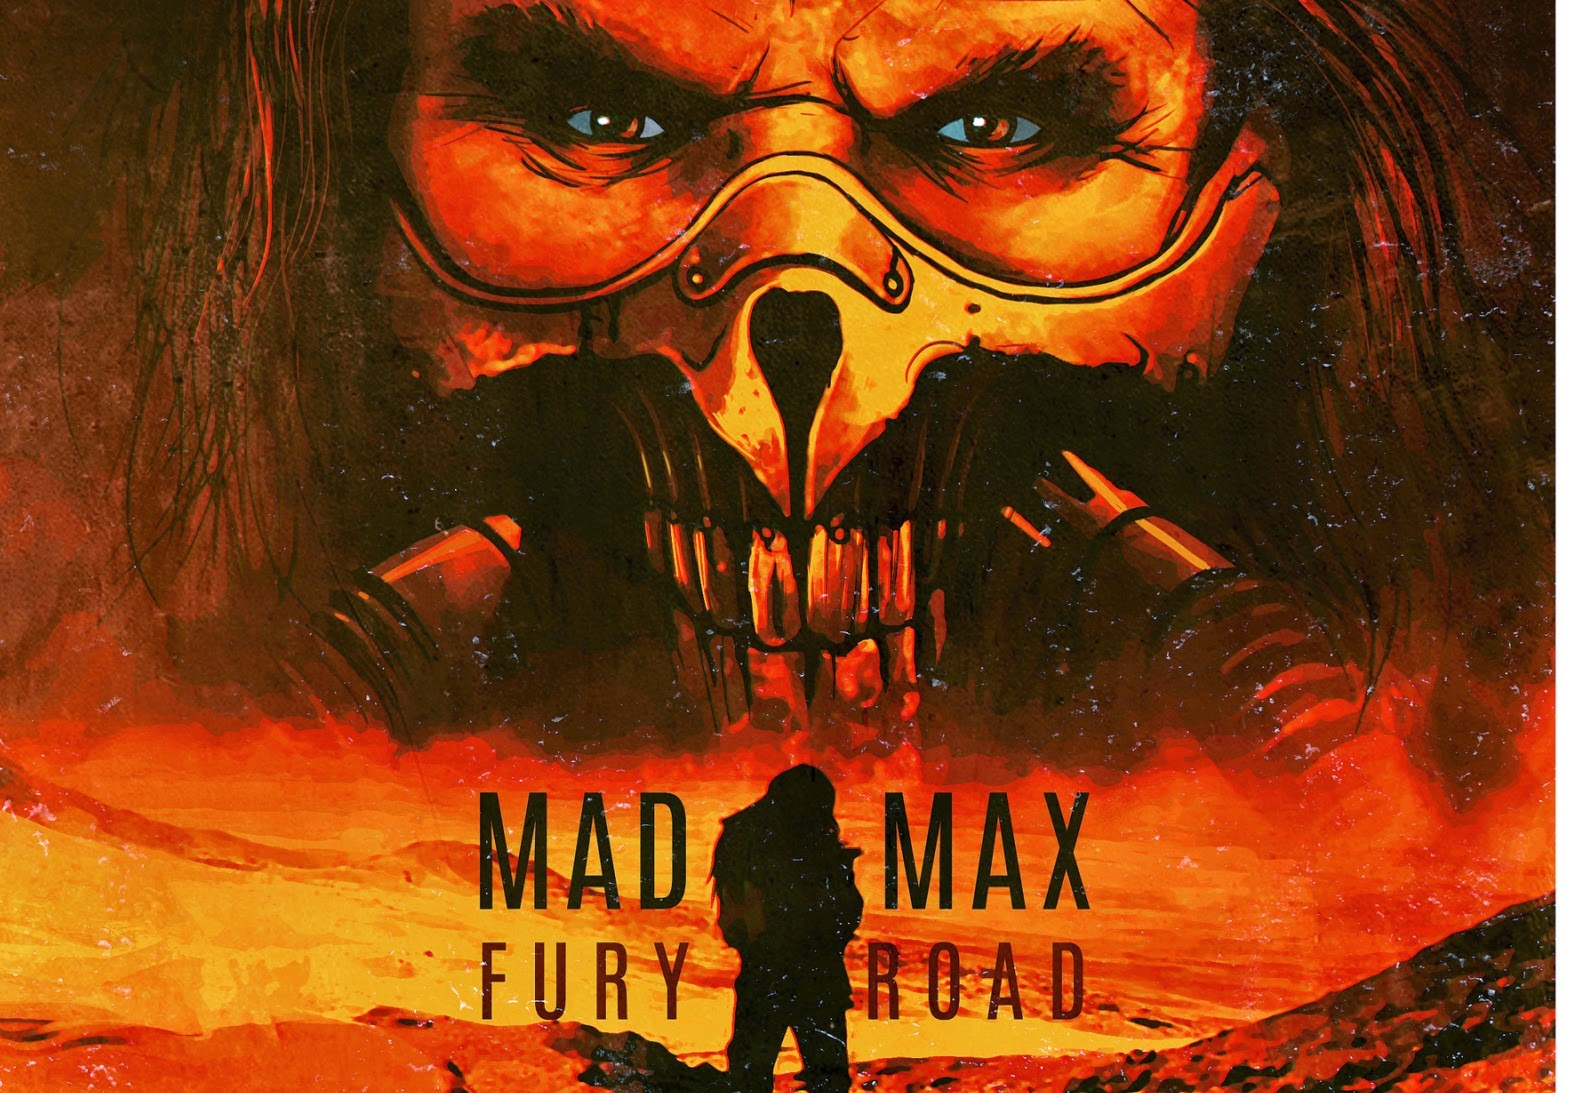 MAD MAX FURY ROAD - Visuel Large image du film 8 George Miller 2015 - Go with the Blog